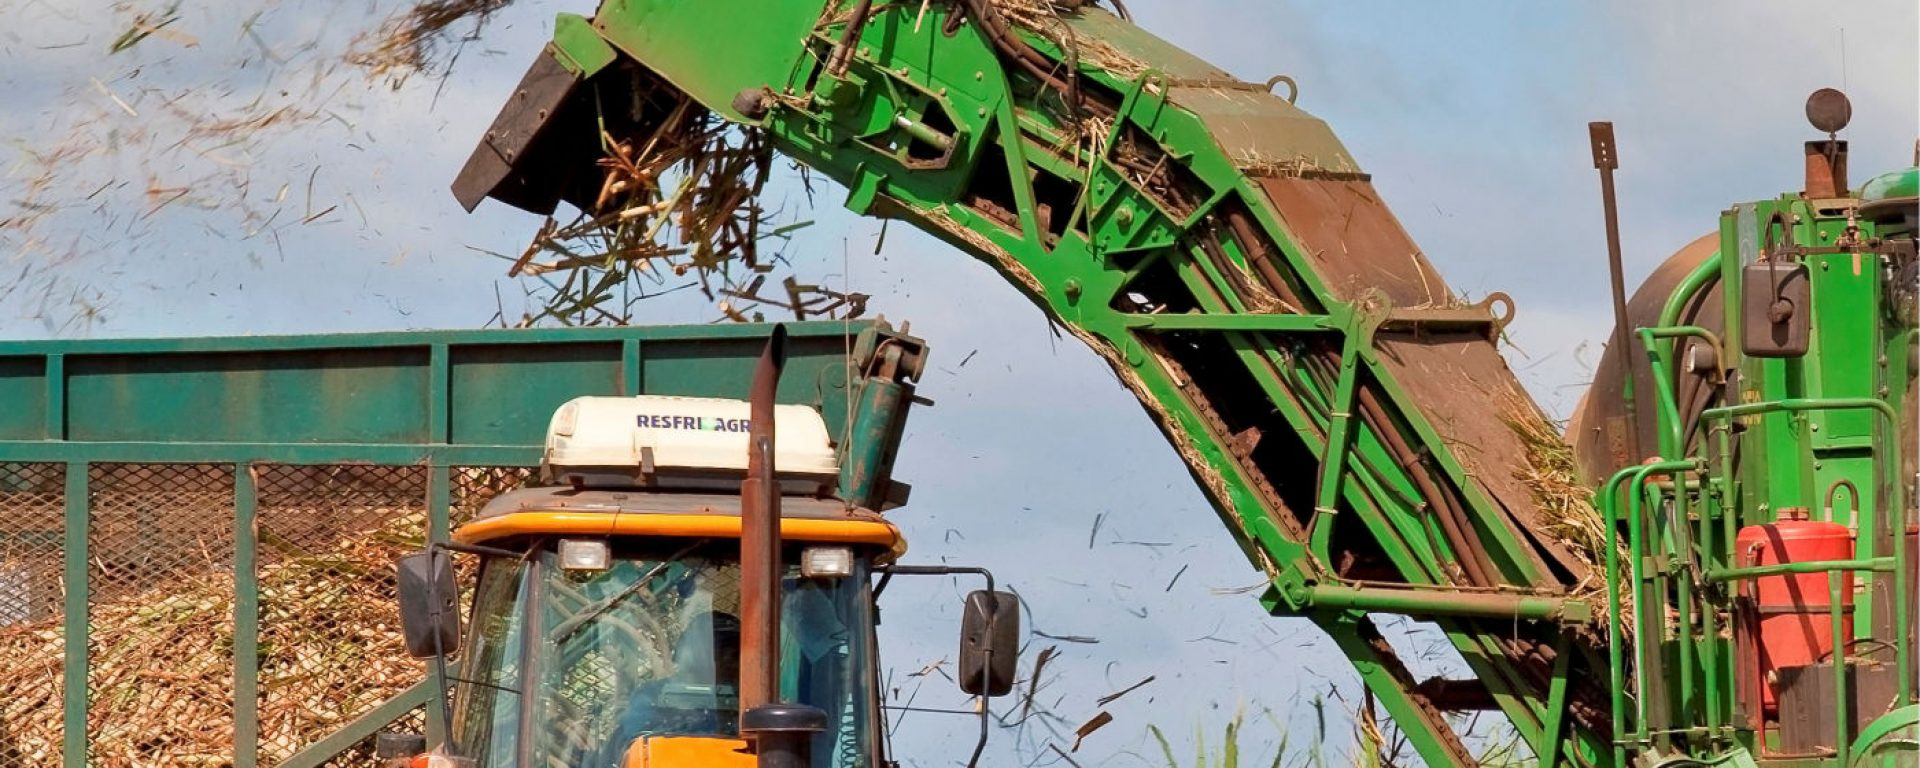 13 June 2018 SMALL-SCALE SUGARCANE FARMERS BEAR THE BRUNT OF SUGAR IMPORTS